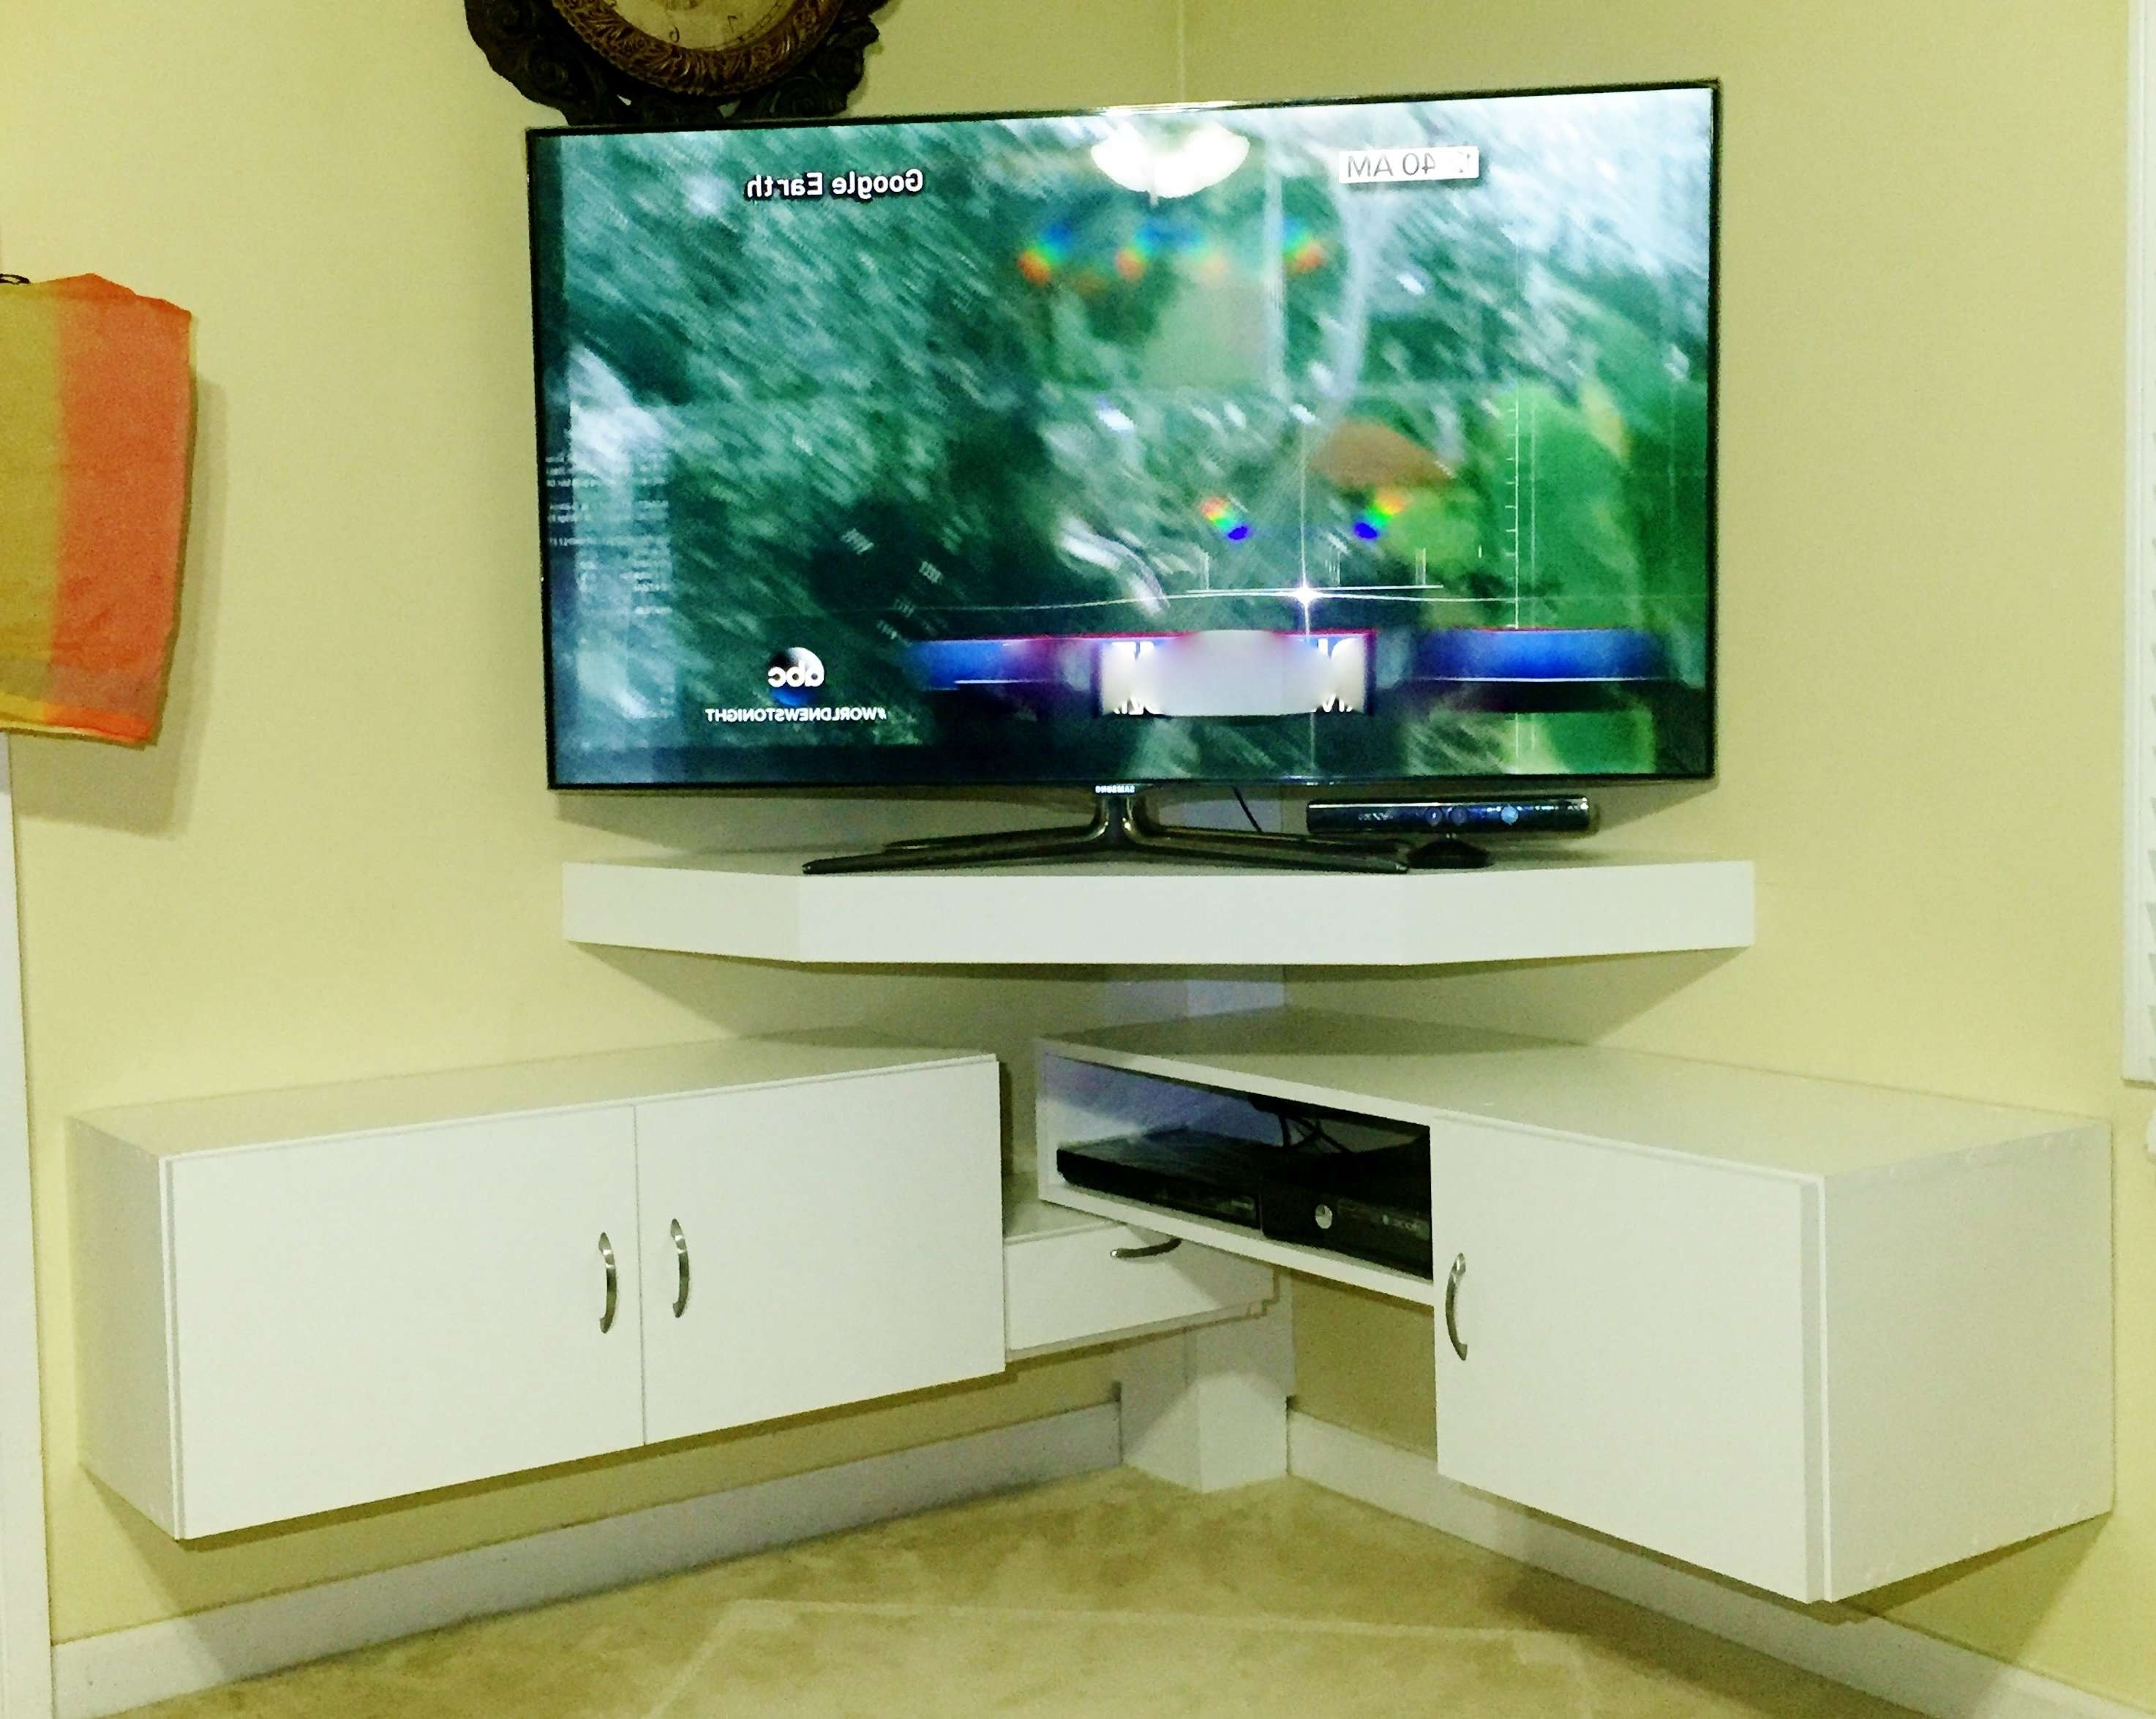 Corner Tv Stands 48 Inches Tags : 50 Unforgettable Corner Tv Stand Pertaining To Corner Tv Stands 40 Inch (View 3 of 20)